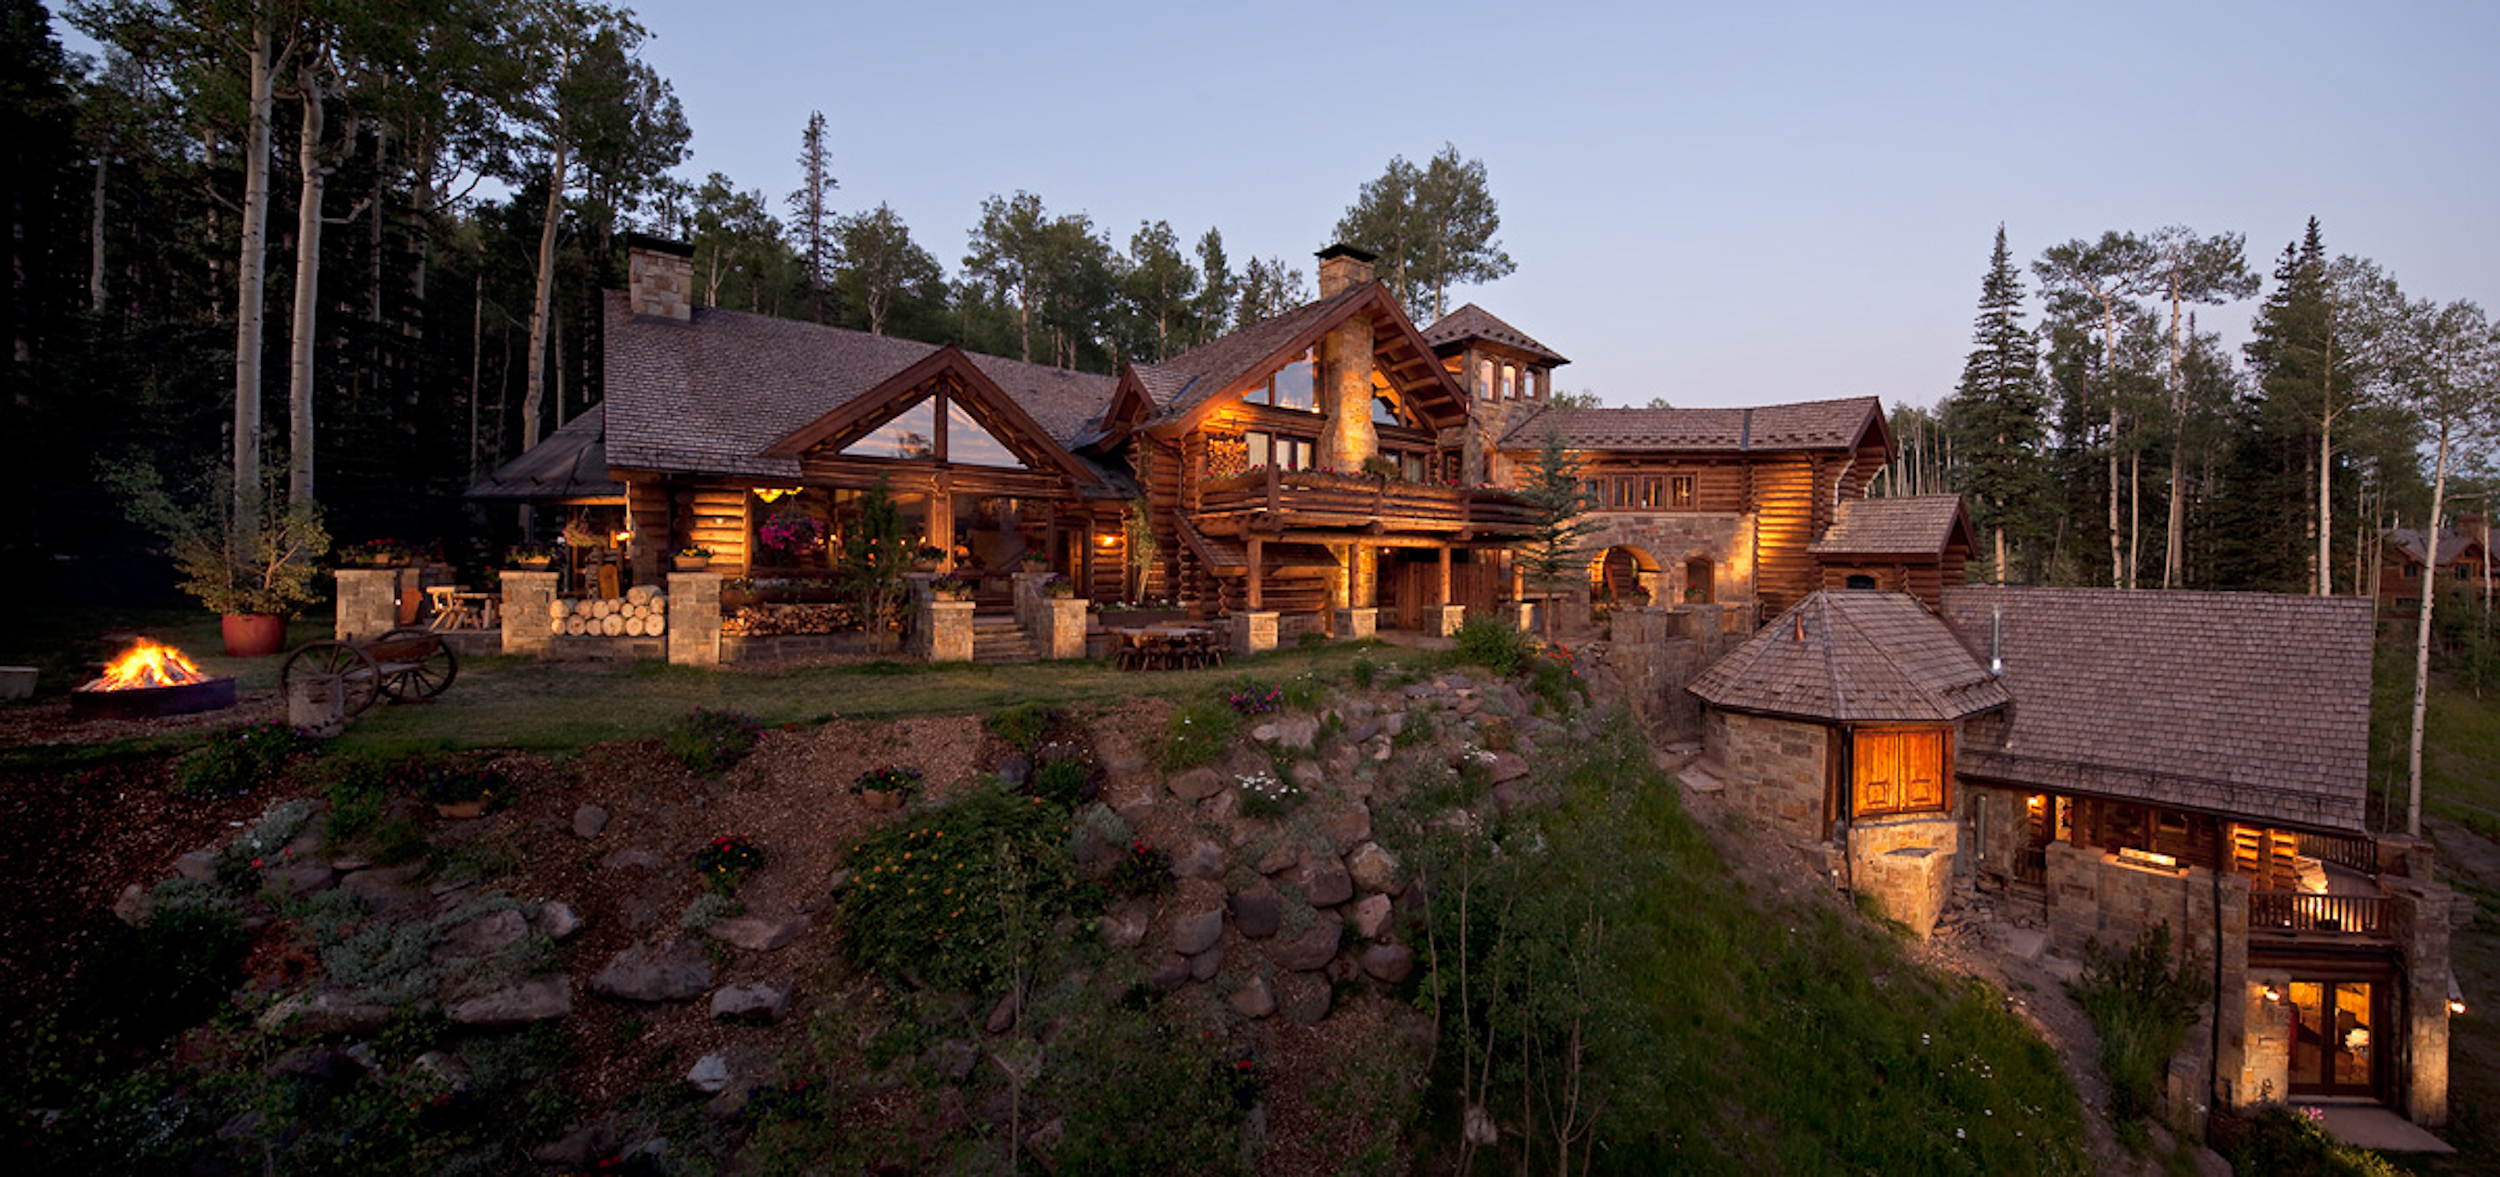 Pin by michal bennett on wanderlust n nature pinterest for Most expensive homes in colorado